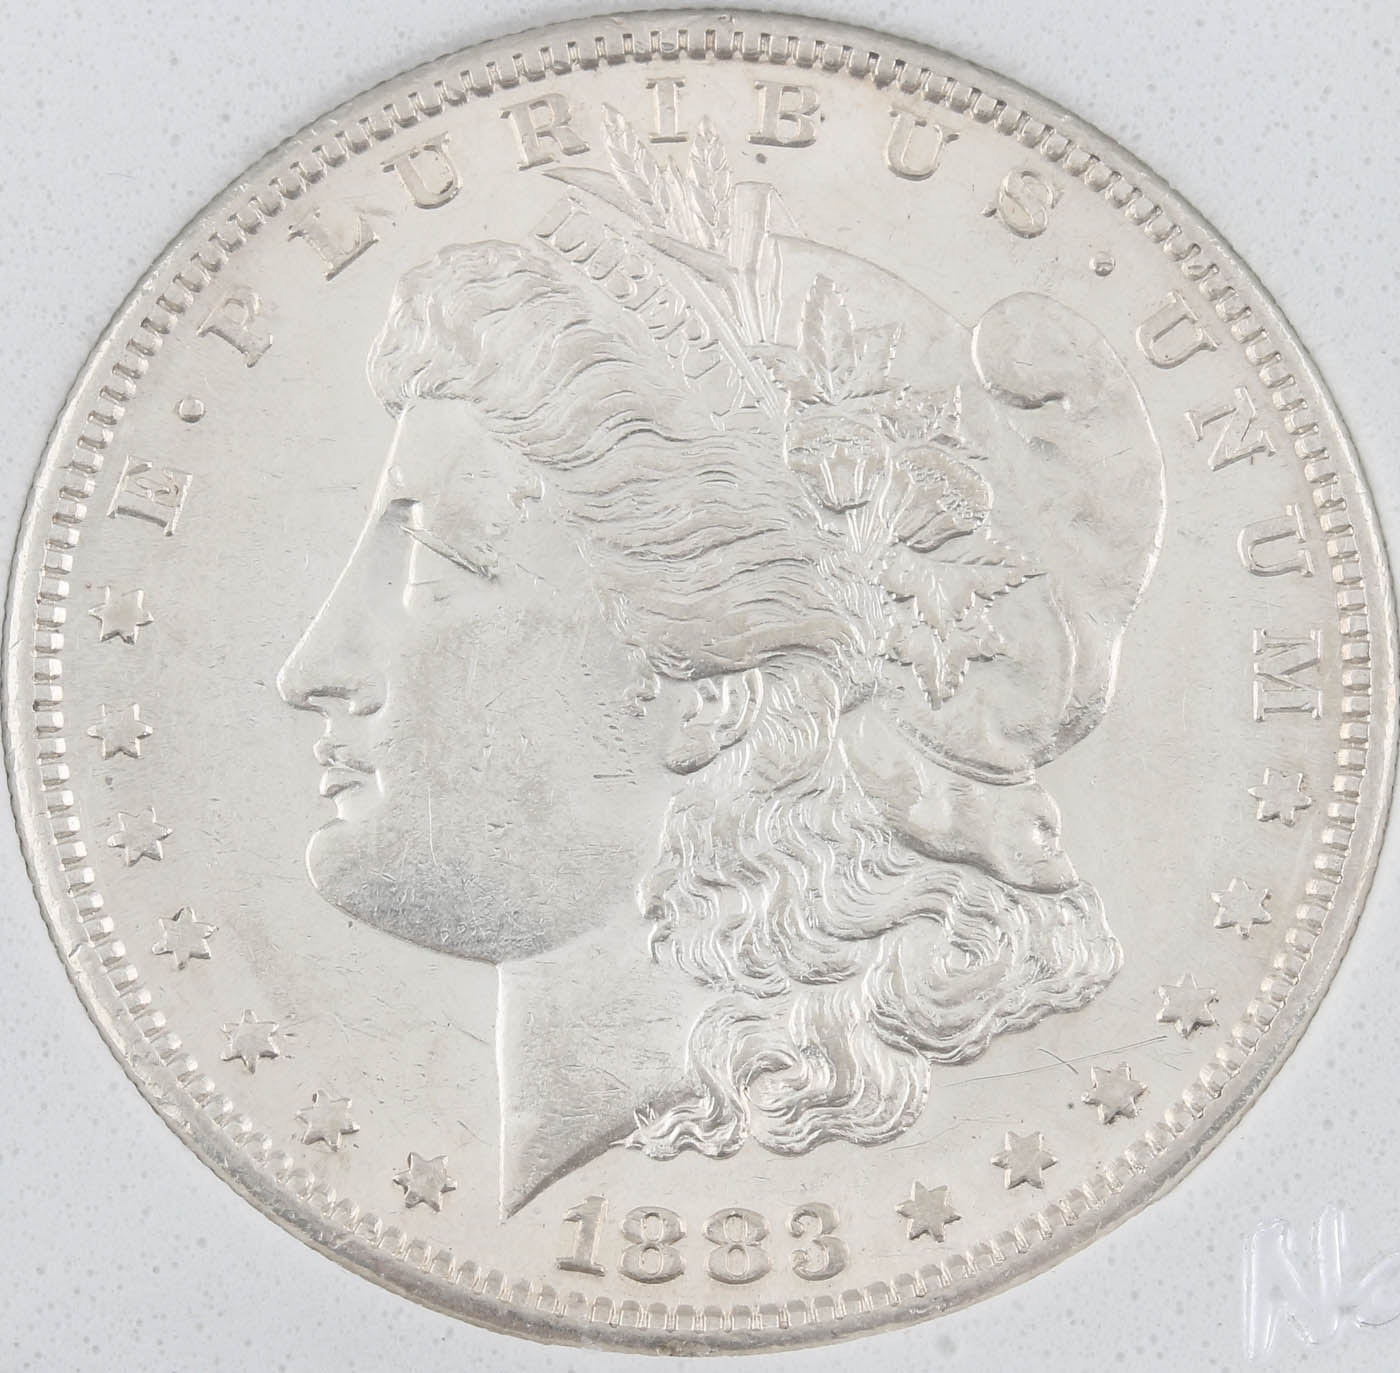 1883-S Silver Morgan Dollar